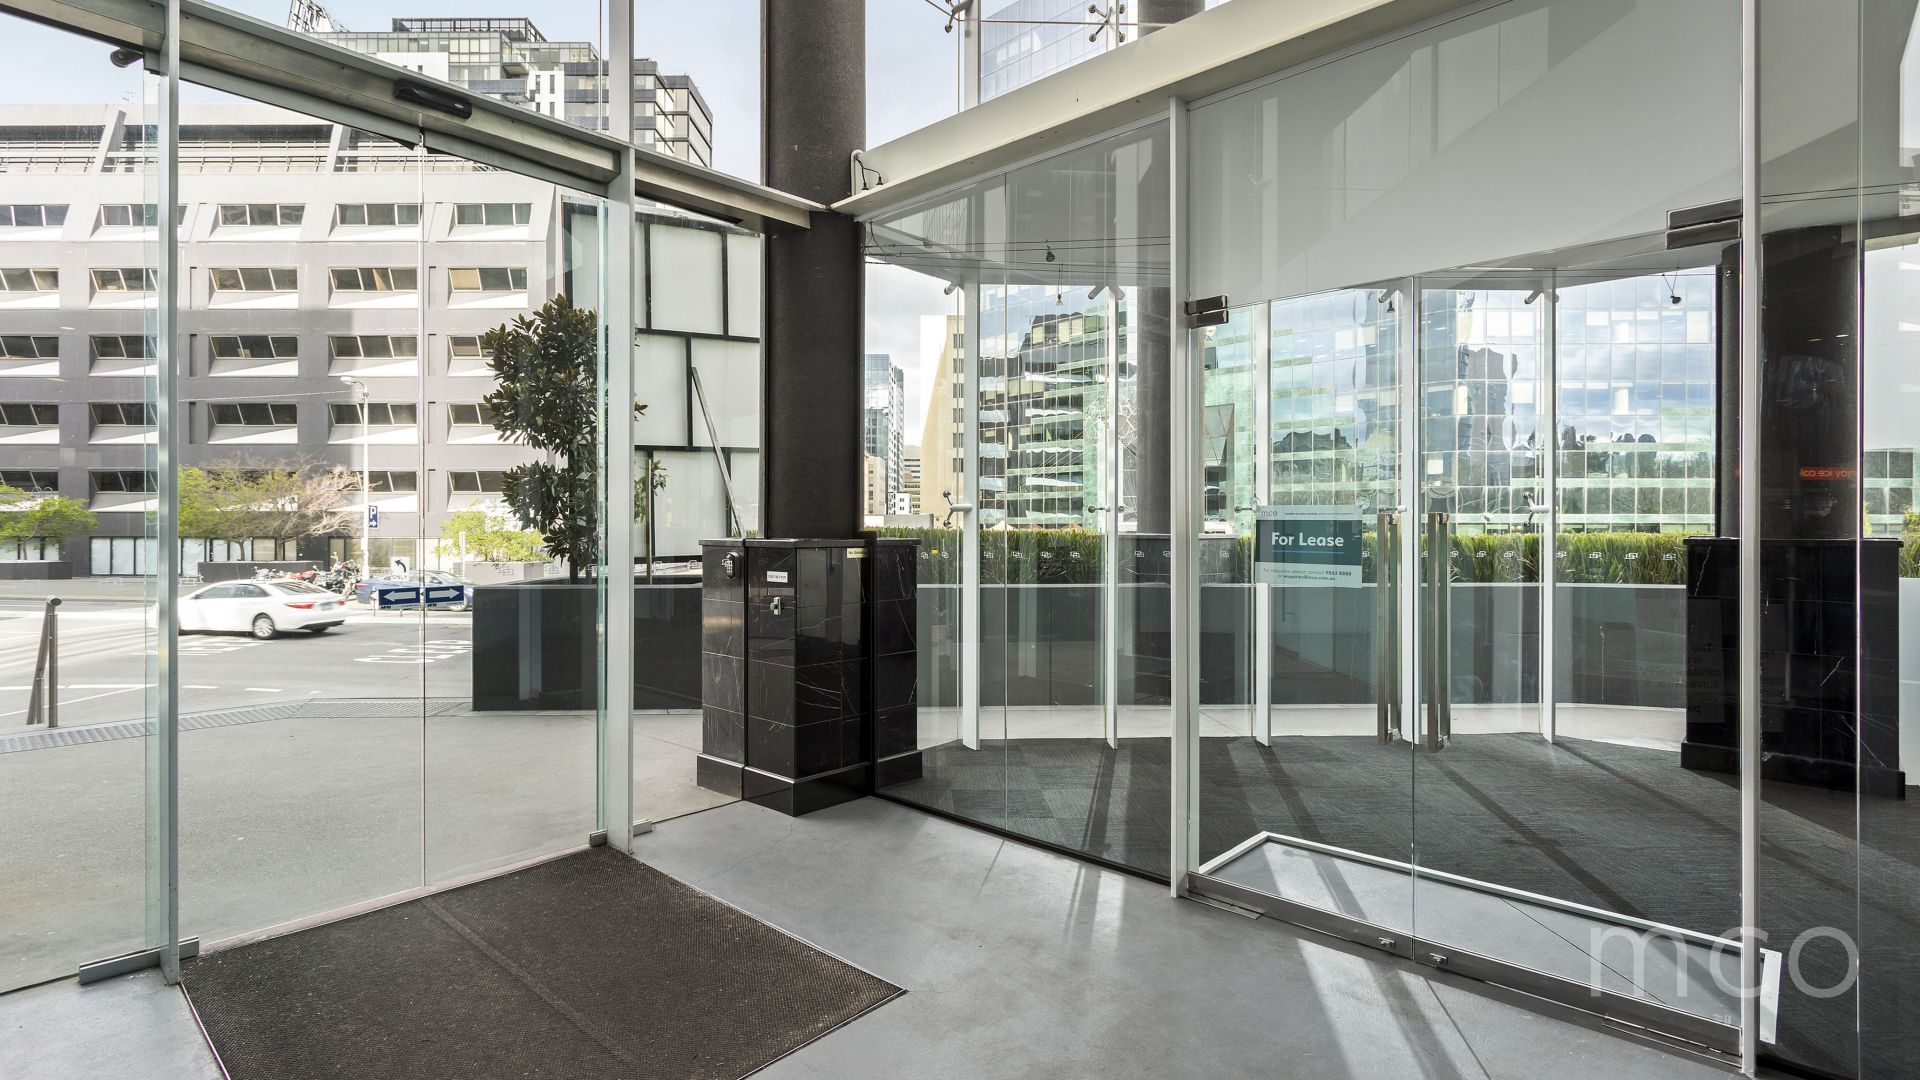 Rare and prominent retail space in the renowned St Kilda Rd Towers